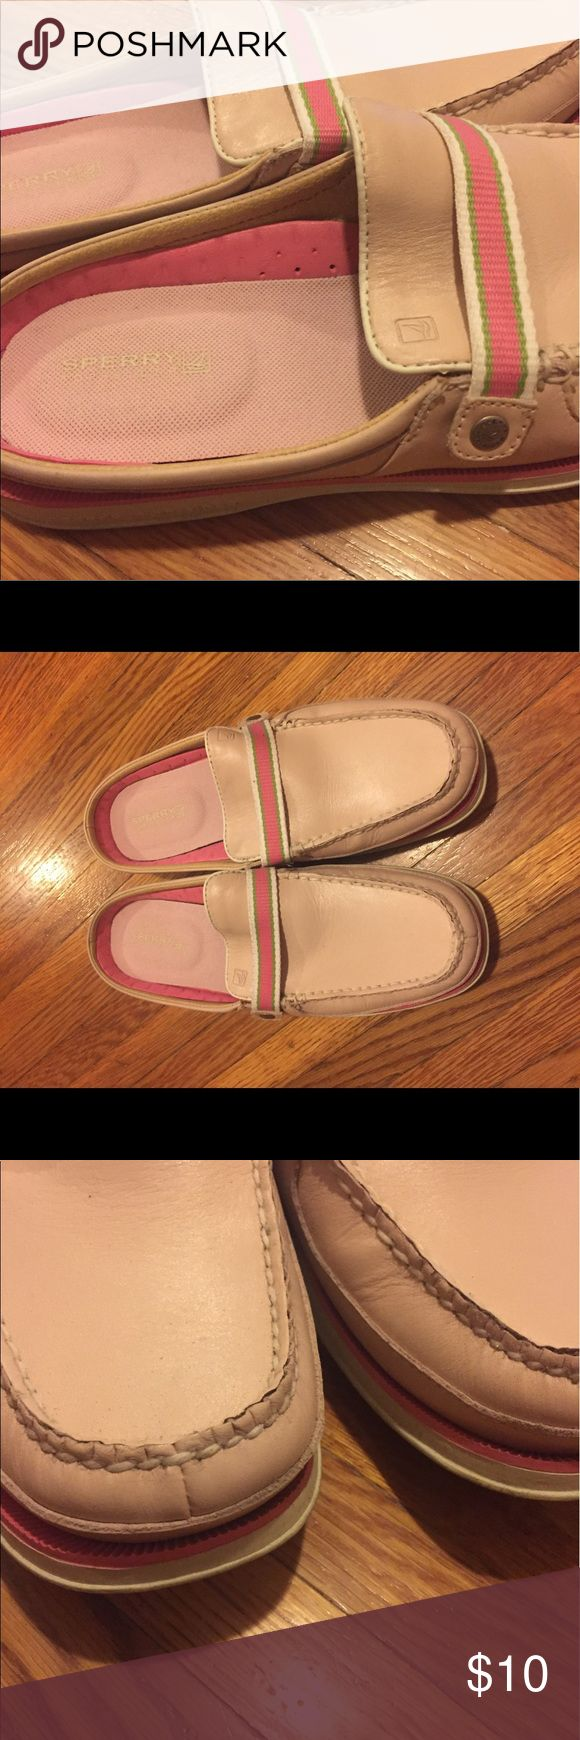 Sperry Topsider pink open heel boat shoes Ahoy! All you need is a yacht in these. Good used condition Sperry Topsiders with a green and pink ribbon! Good used condition. No flaws, soles are a little dirty. Sperry Top-Sider Shoes Flats & Loafers